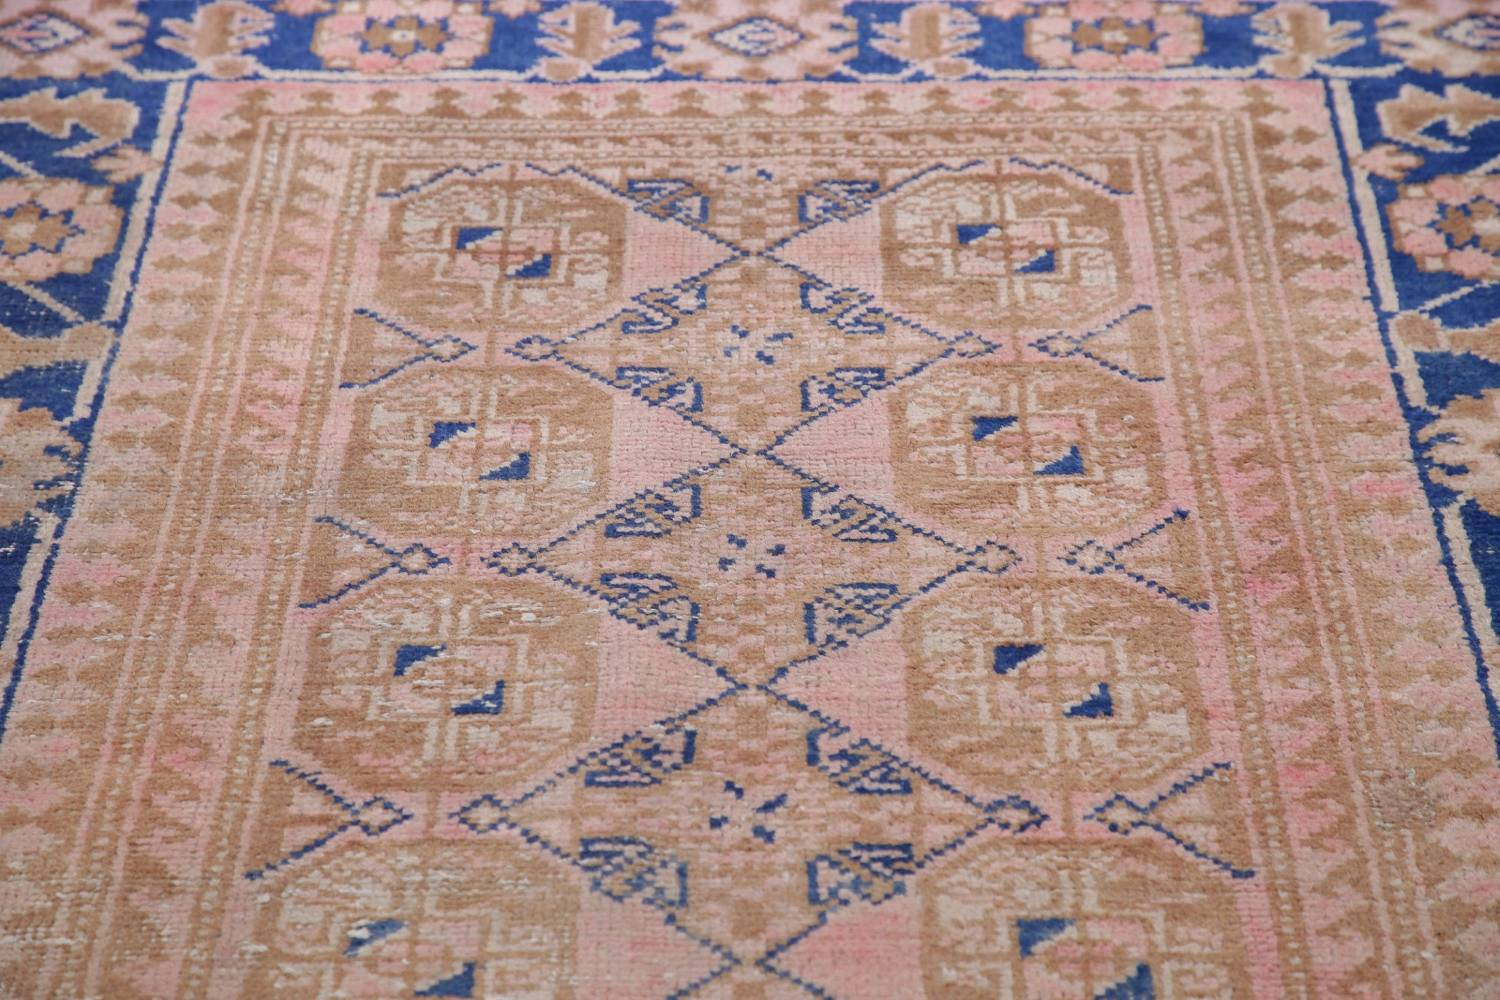 Antique Muted Distressed Malayer Persian Runner Rug 4x11 image 15